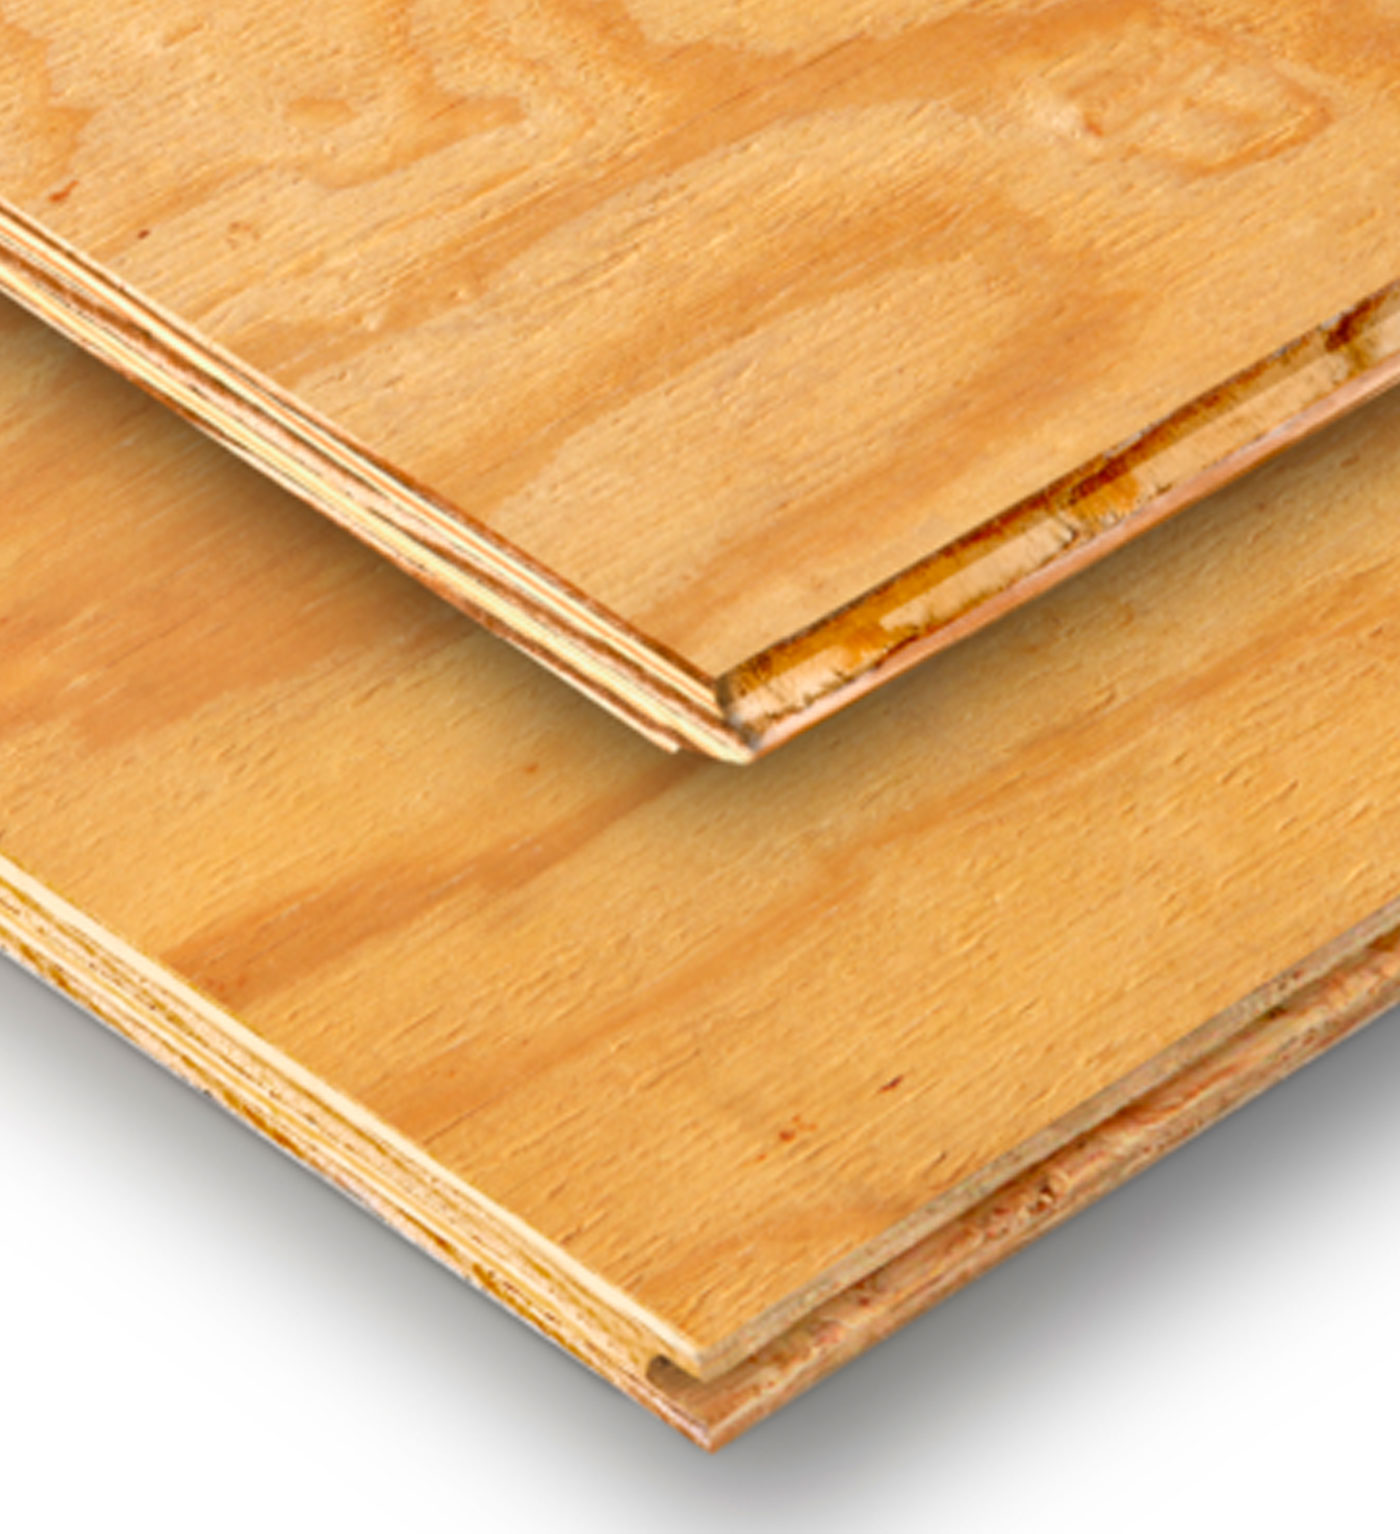 ccx-plywood-lumber-supply-store-eureka-ca-humboldt-county-california